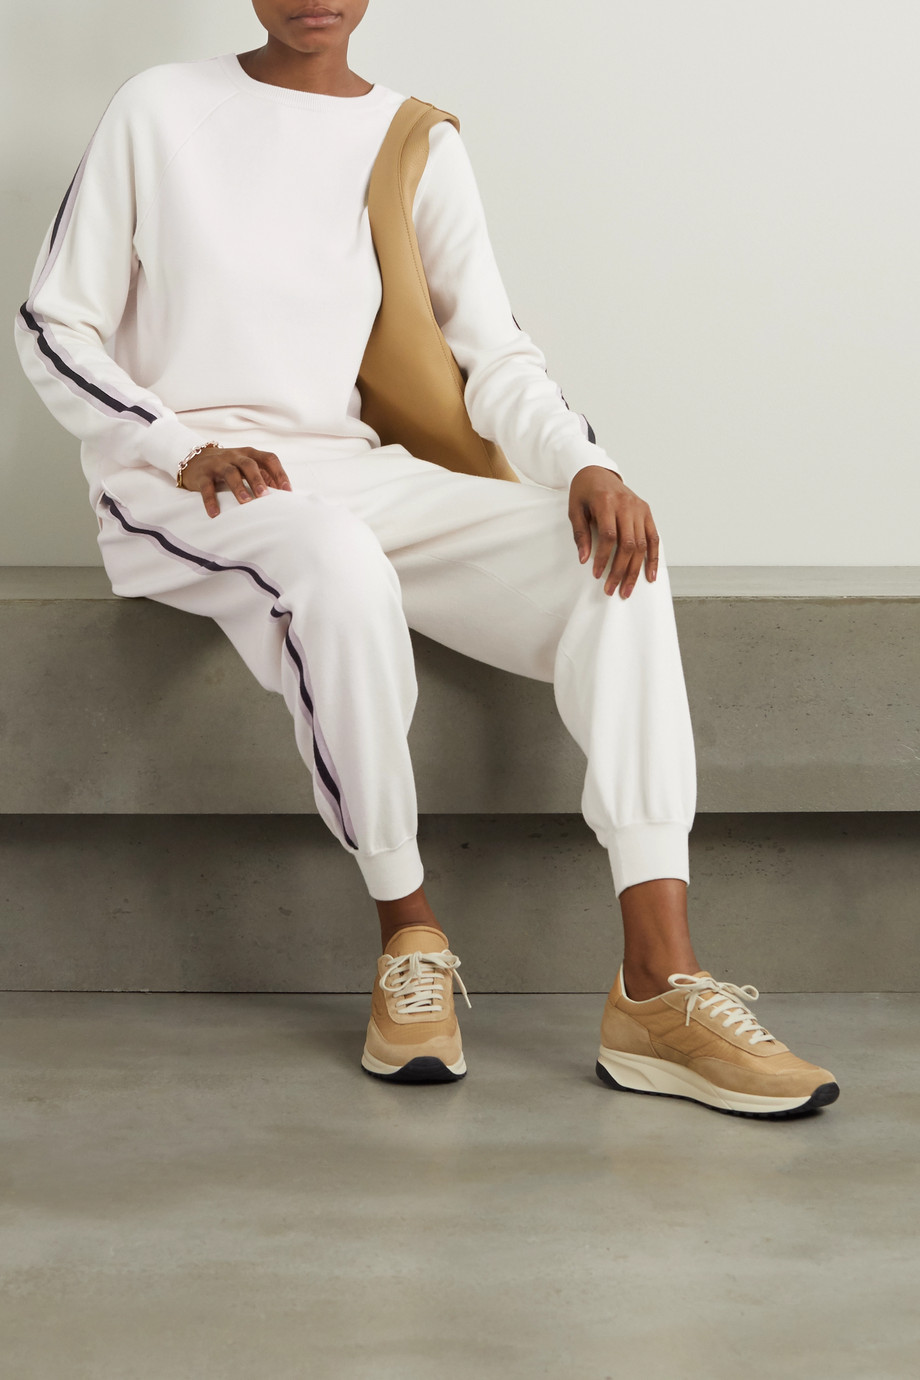 Olivia von Halle Missy Moscow striped silk and cashmere-blend sweatshirt and track pants set